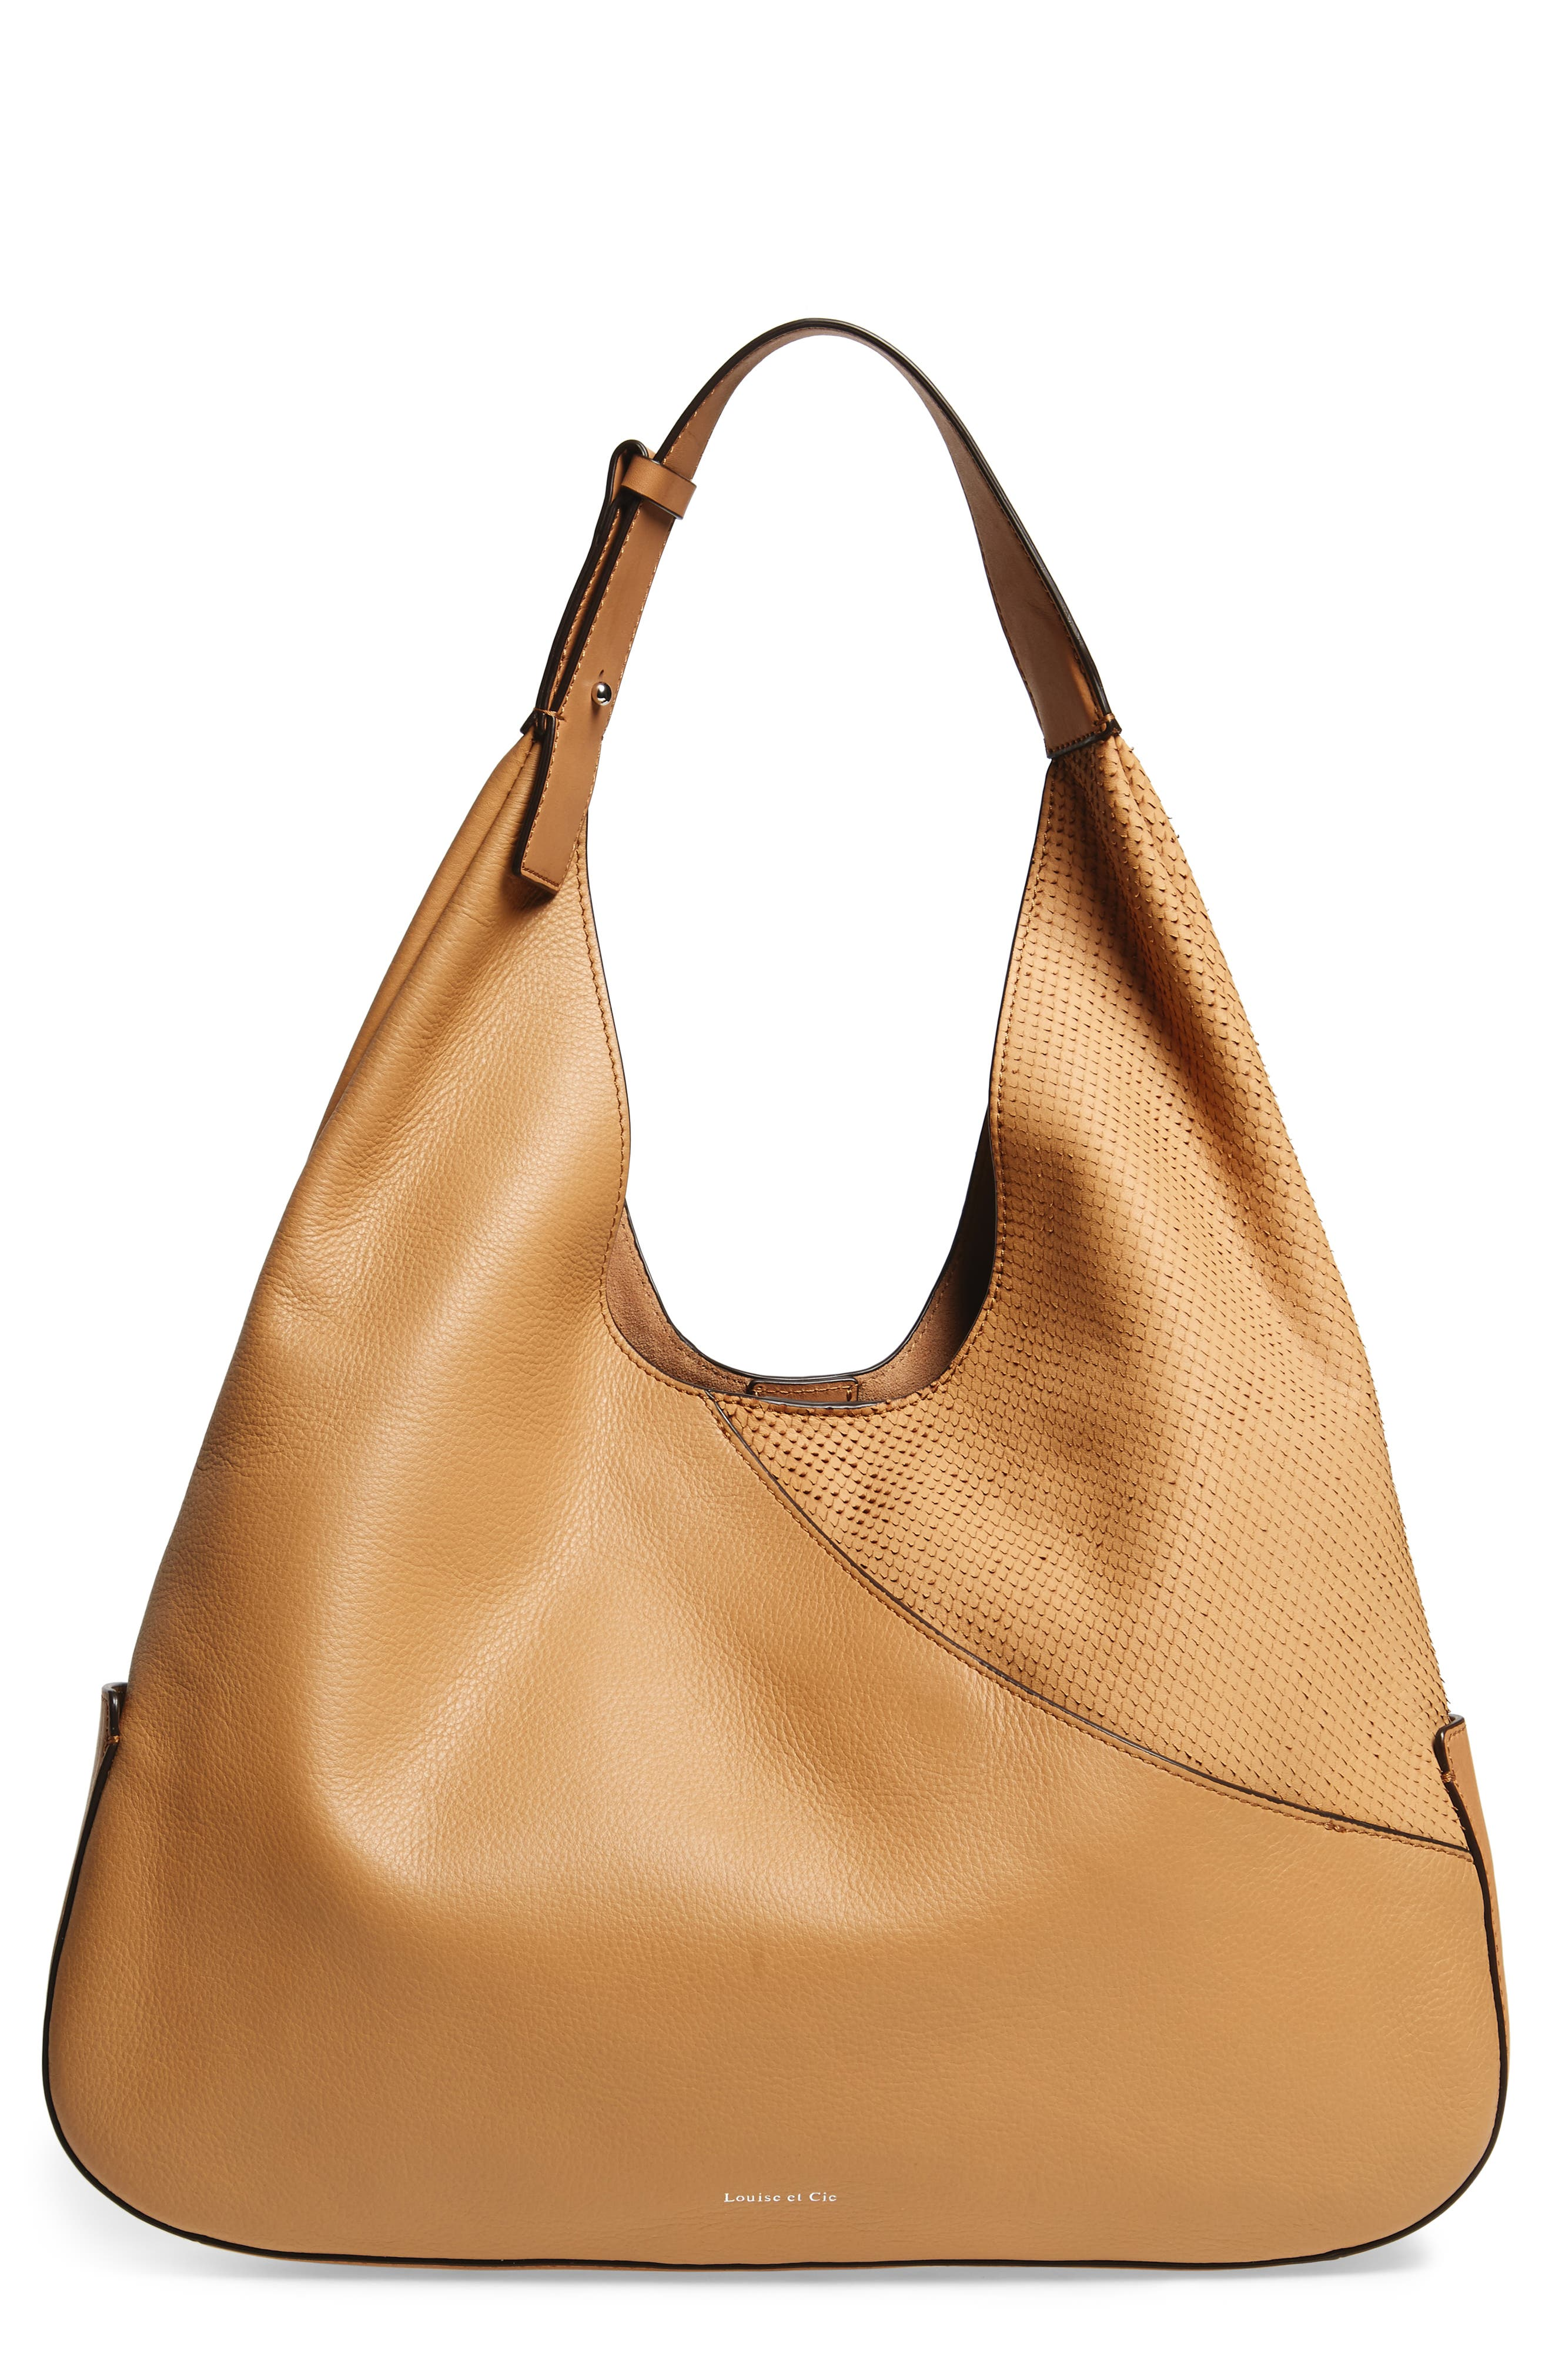 Louise et Cie Large Sonye Leather Hobo Bag